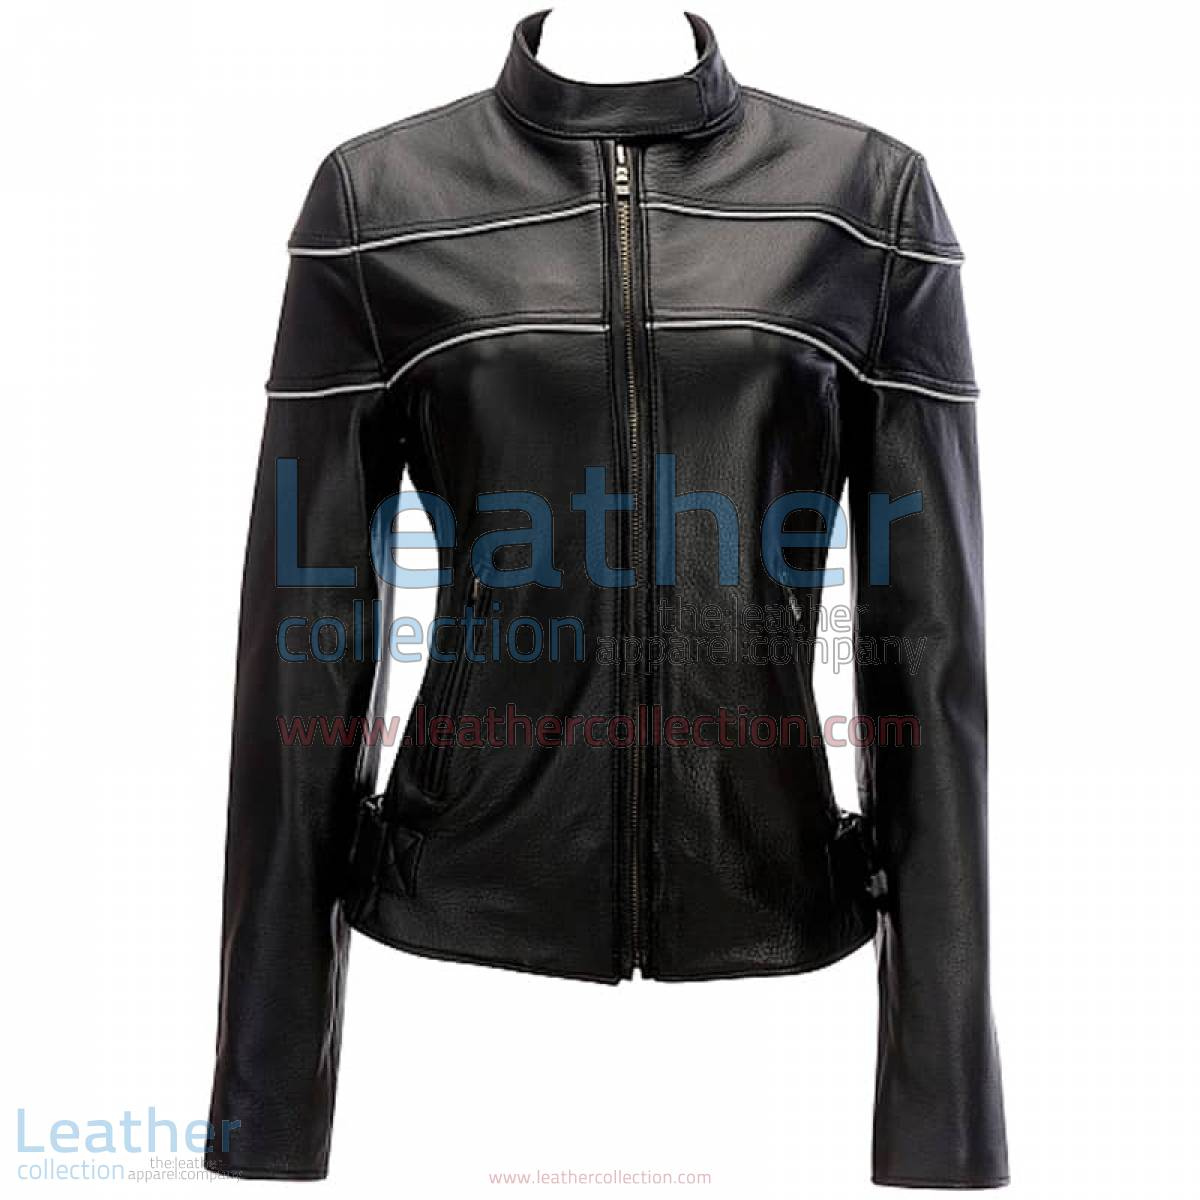 Leather Reflective Piping Jacket Black | jacket black,piping jacket